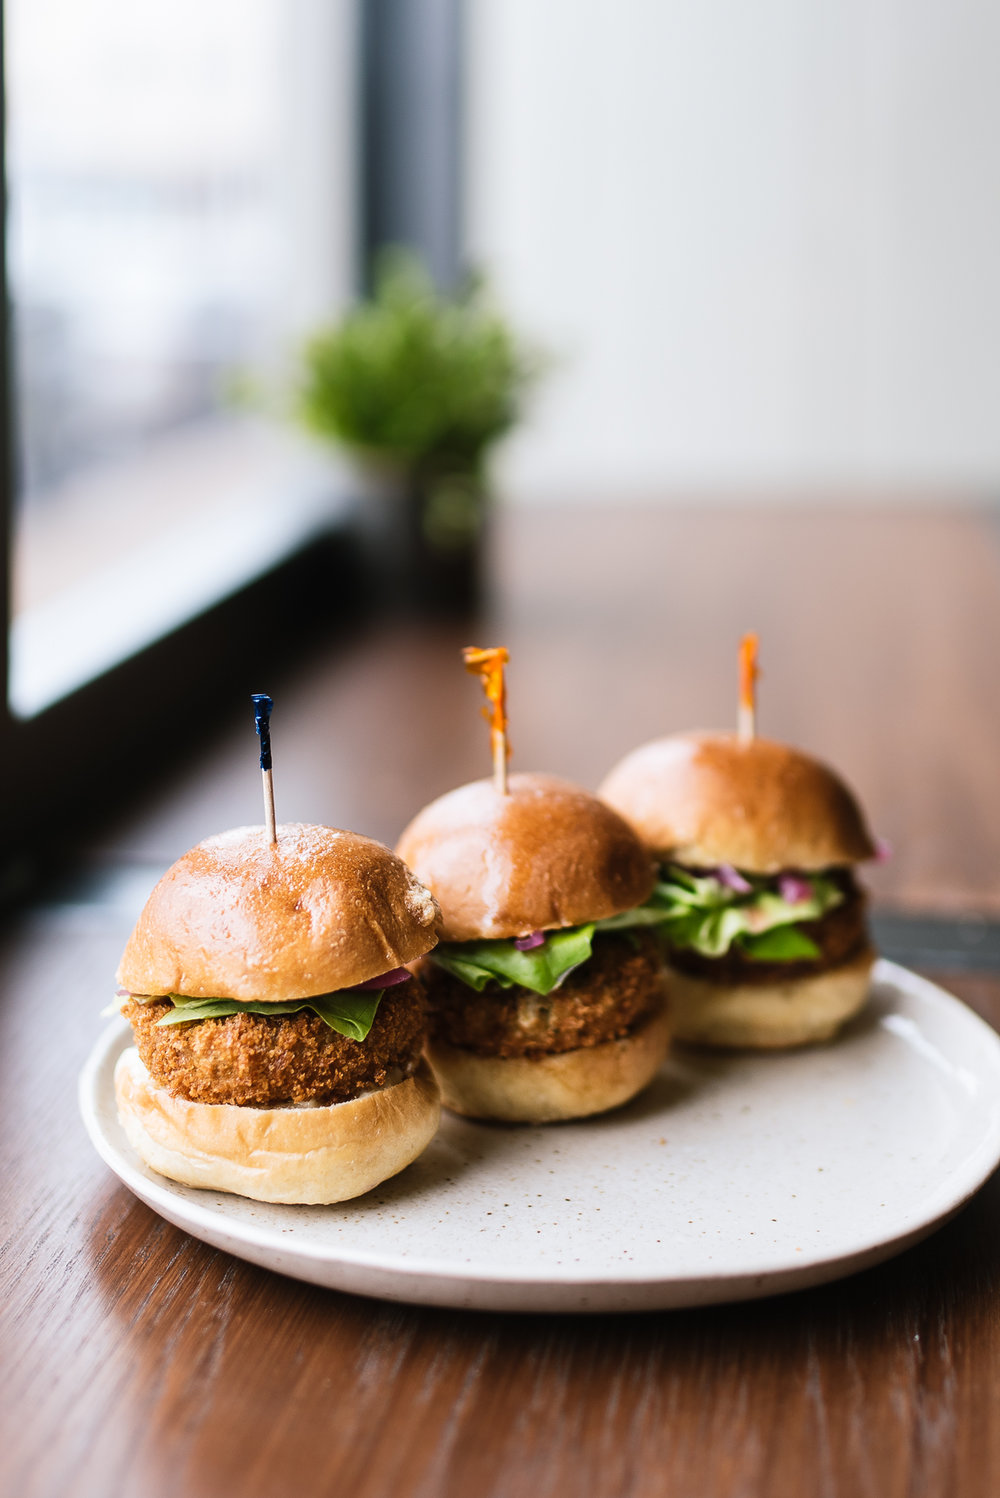 Pork trotter sliders - brioche, roasted garlic mustard, greens